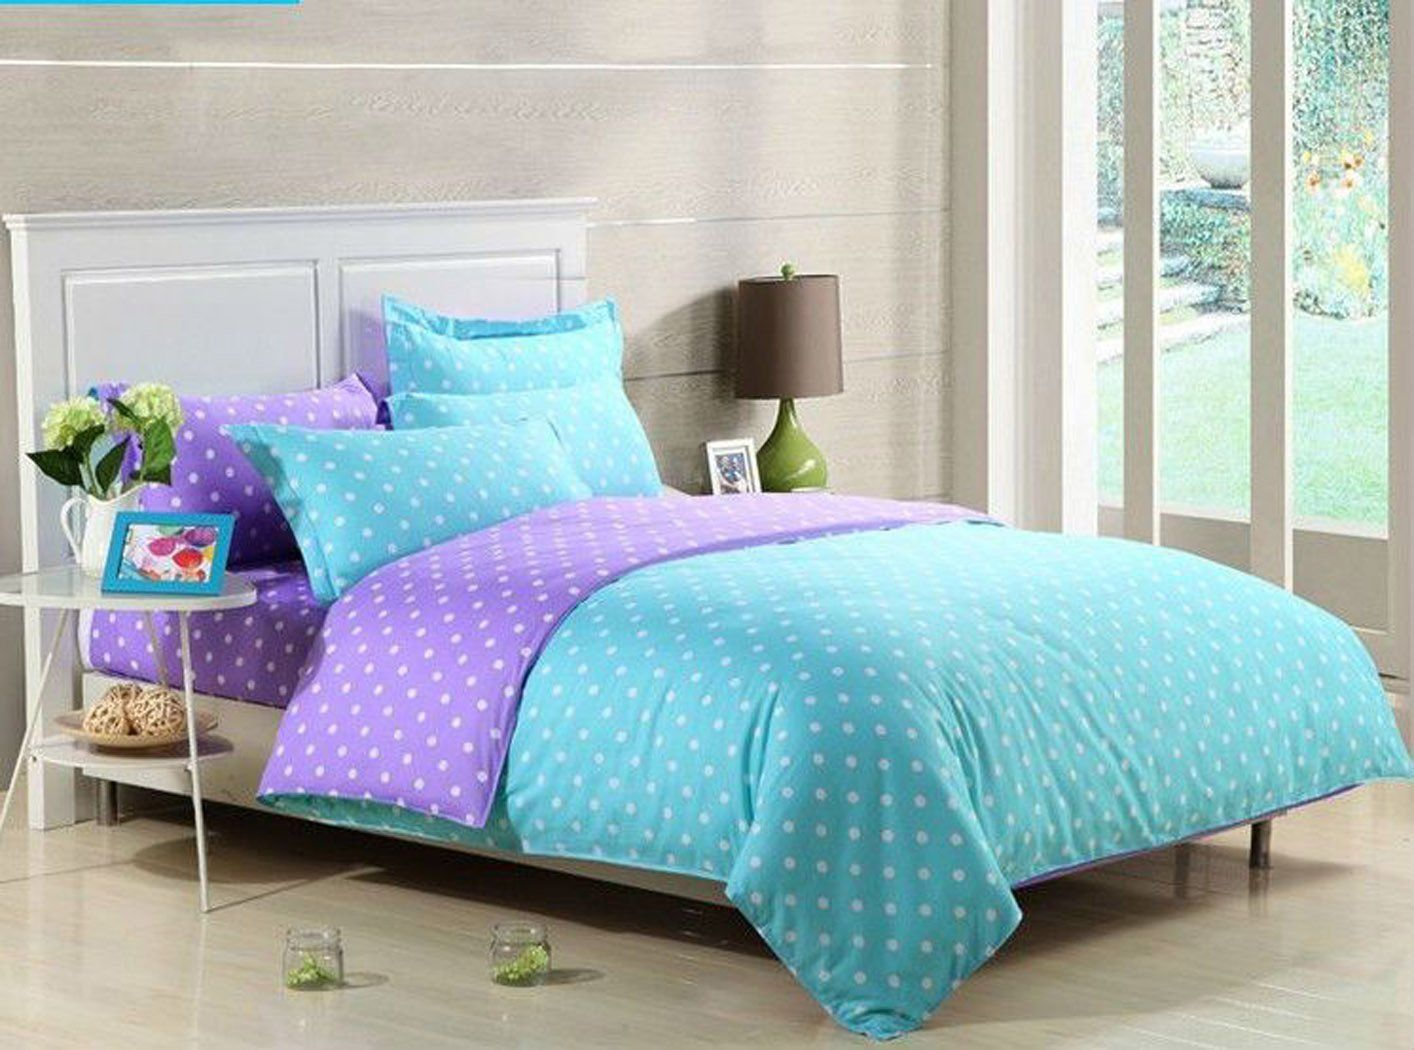 Purple bedding for teenage girls - Bedroom Sets For Teenage Girls Blue Inspiration 54729 Ideas Polka Dot Beddingpurple